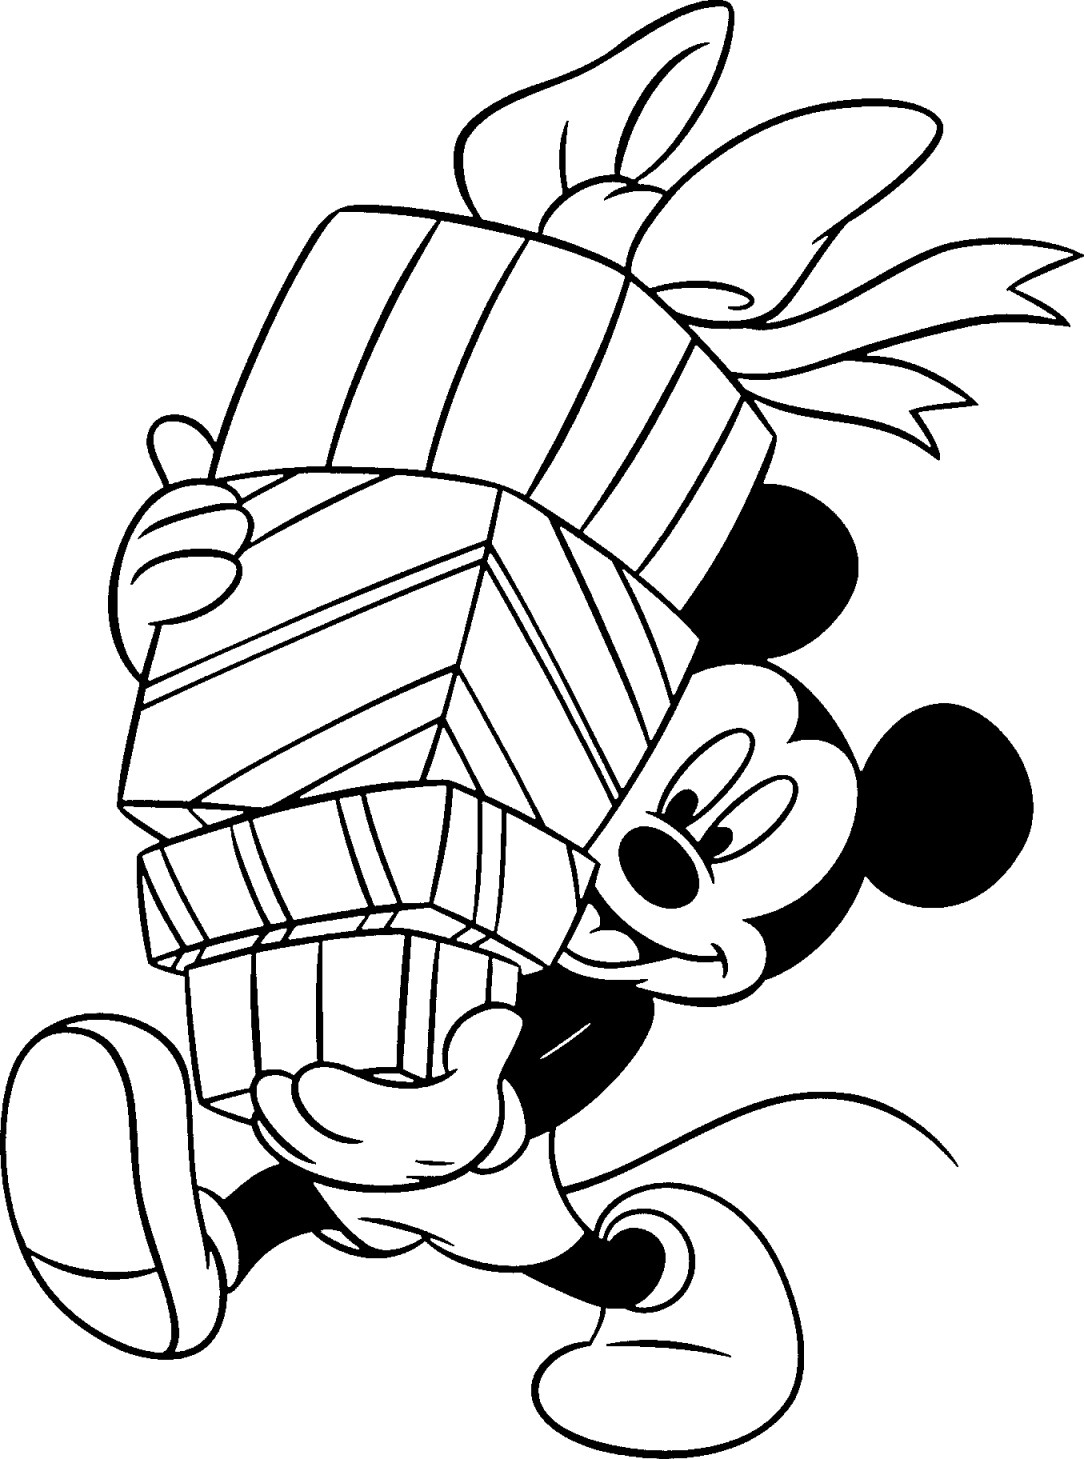 Christmas Coloring Pages Images With Free Disney Printable For Kids Honey Lime